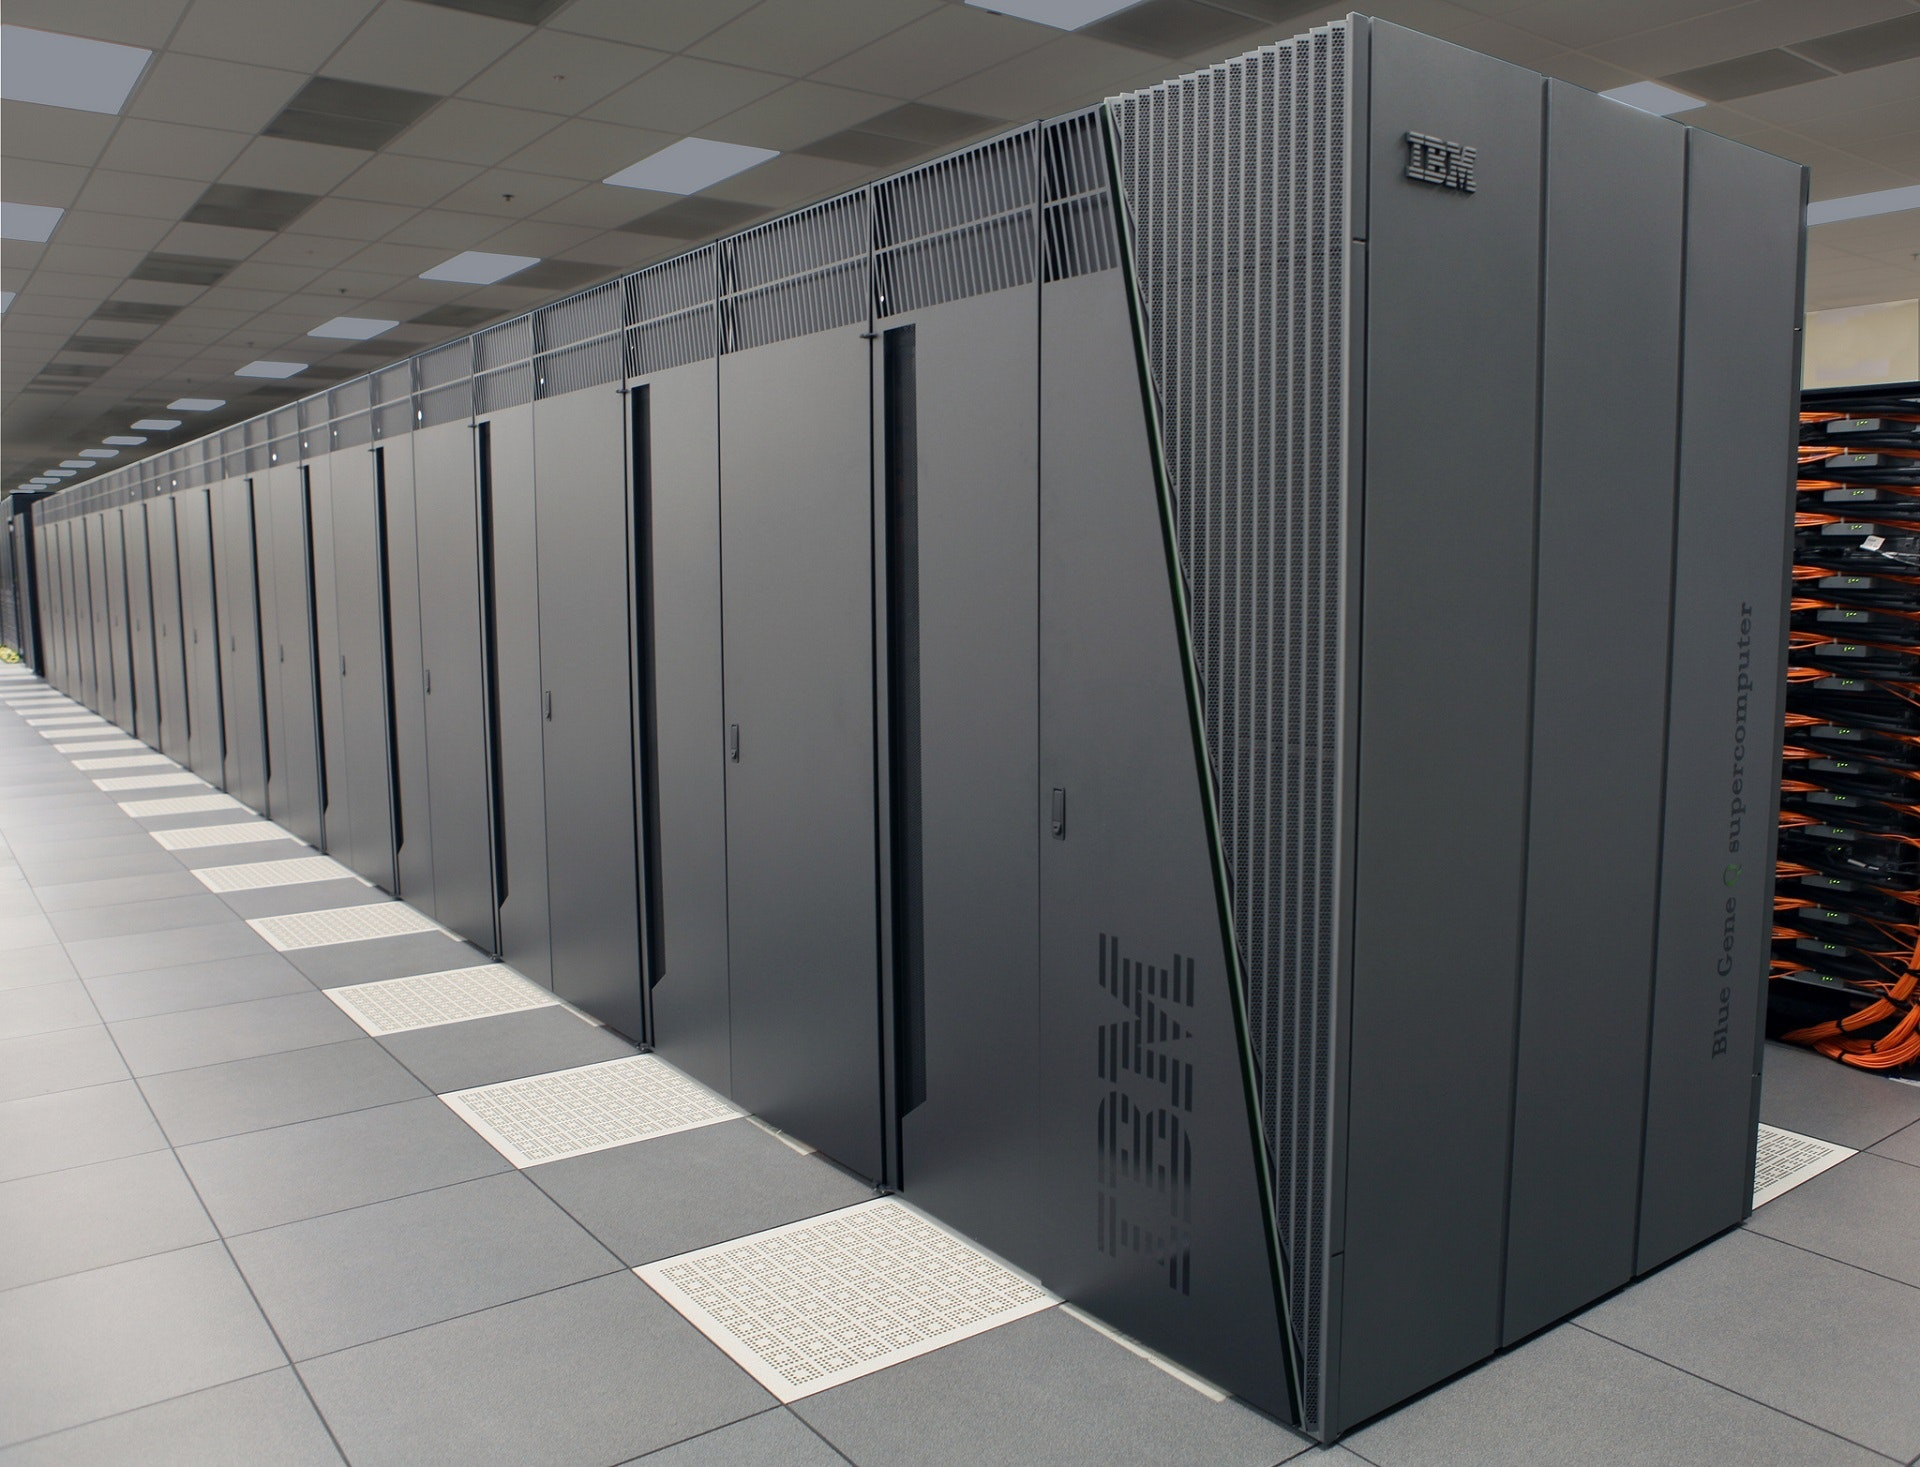 Photo: Mainframe computers lined up side-by-side in a long row in a high-tech storage facility.